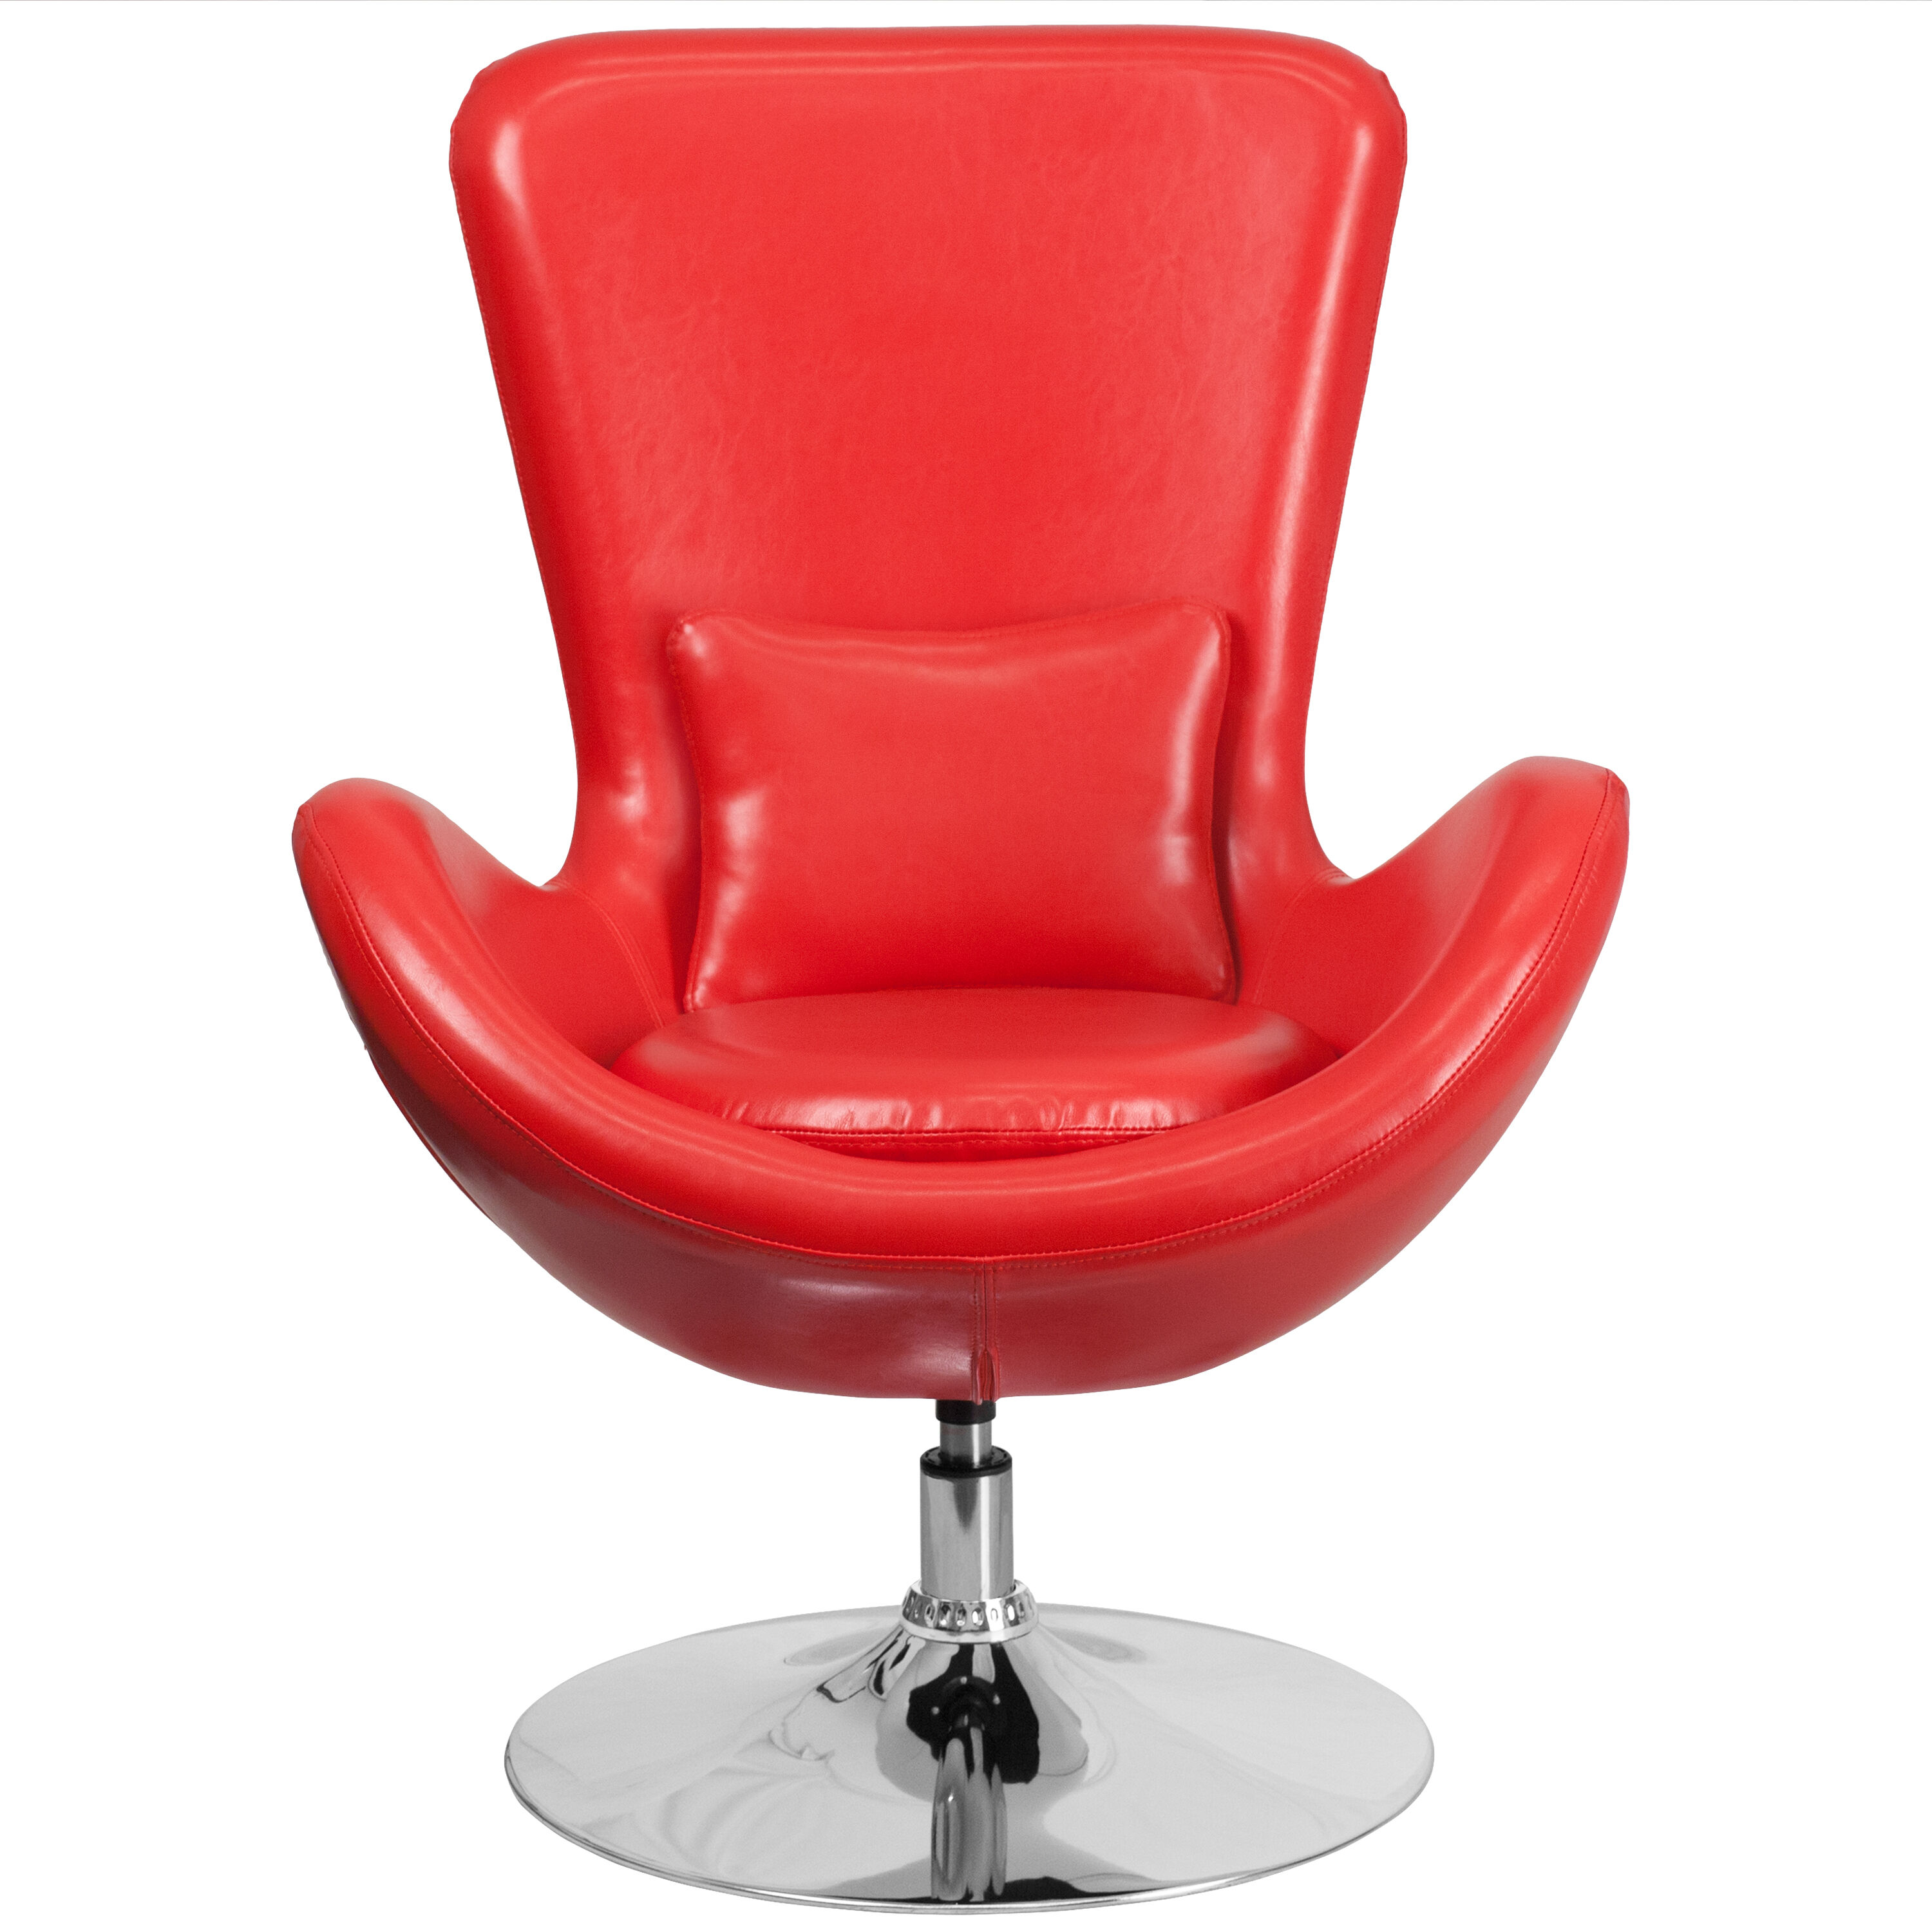 Merveilleux Our Egg Series Red Leather Side Reception Chair Is On Sale Now.